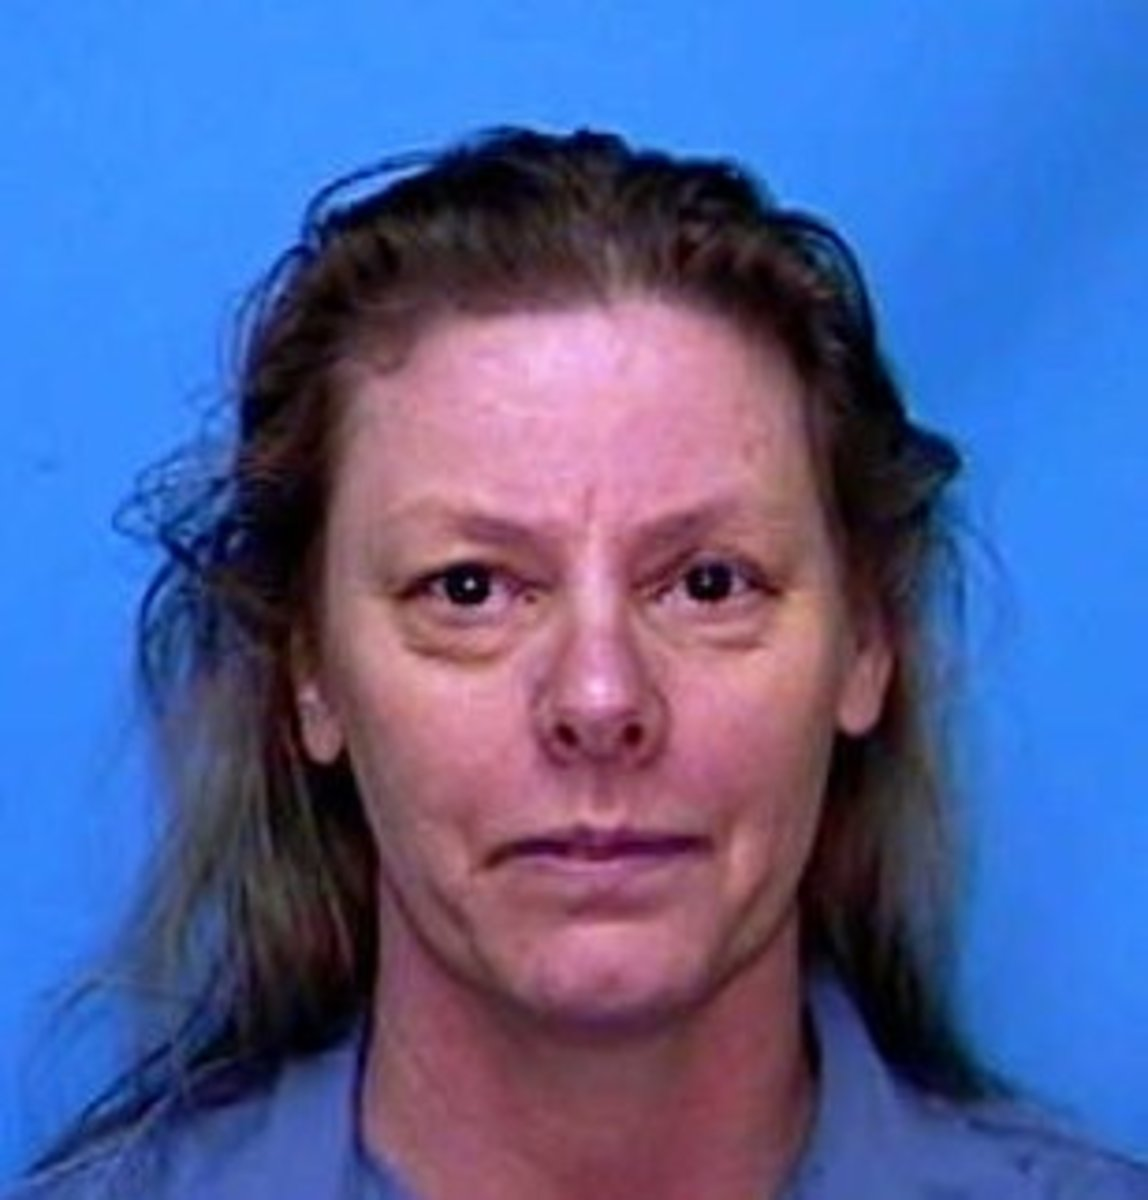 Aileen Wuornos is a female serial killer who killed seven men in Florida between 1989 and 1990.  She claimed self defense, but was found guilty of six murders and executed by the State of Florida by lethal injection on October 9, 2002.